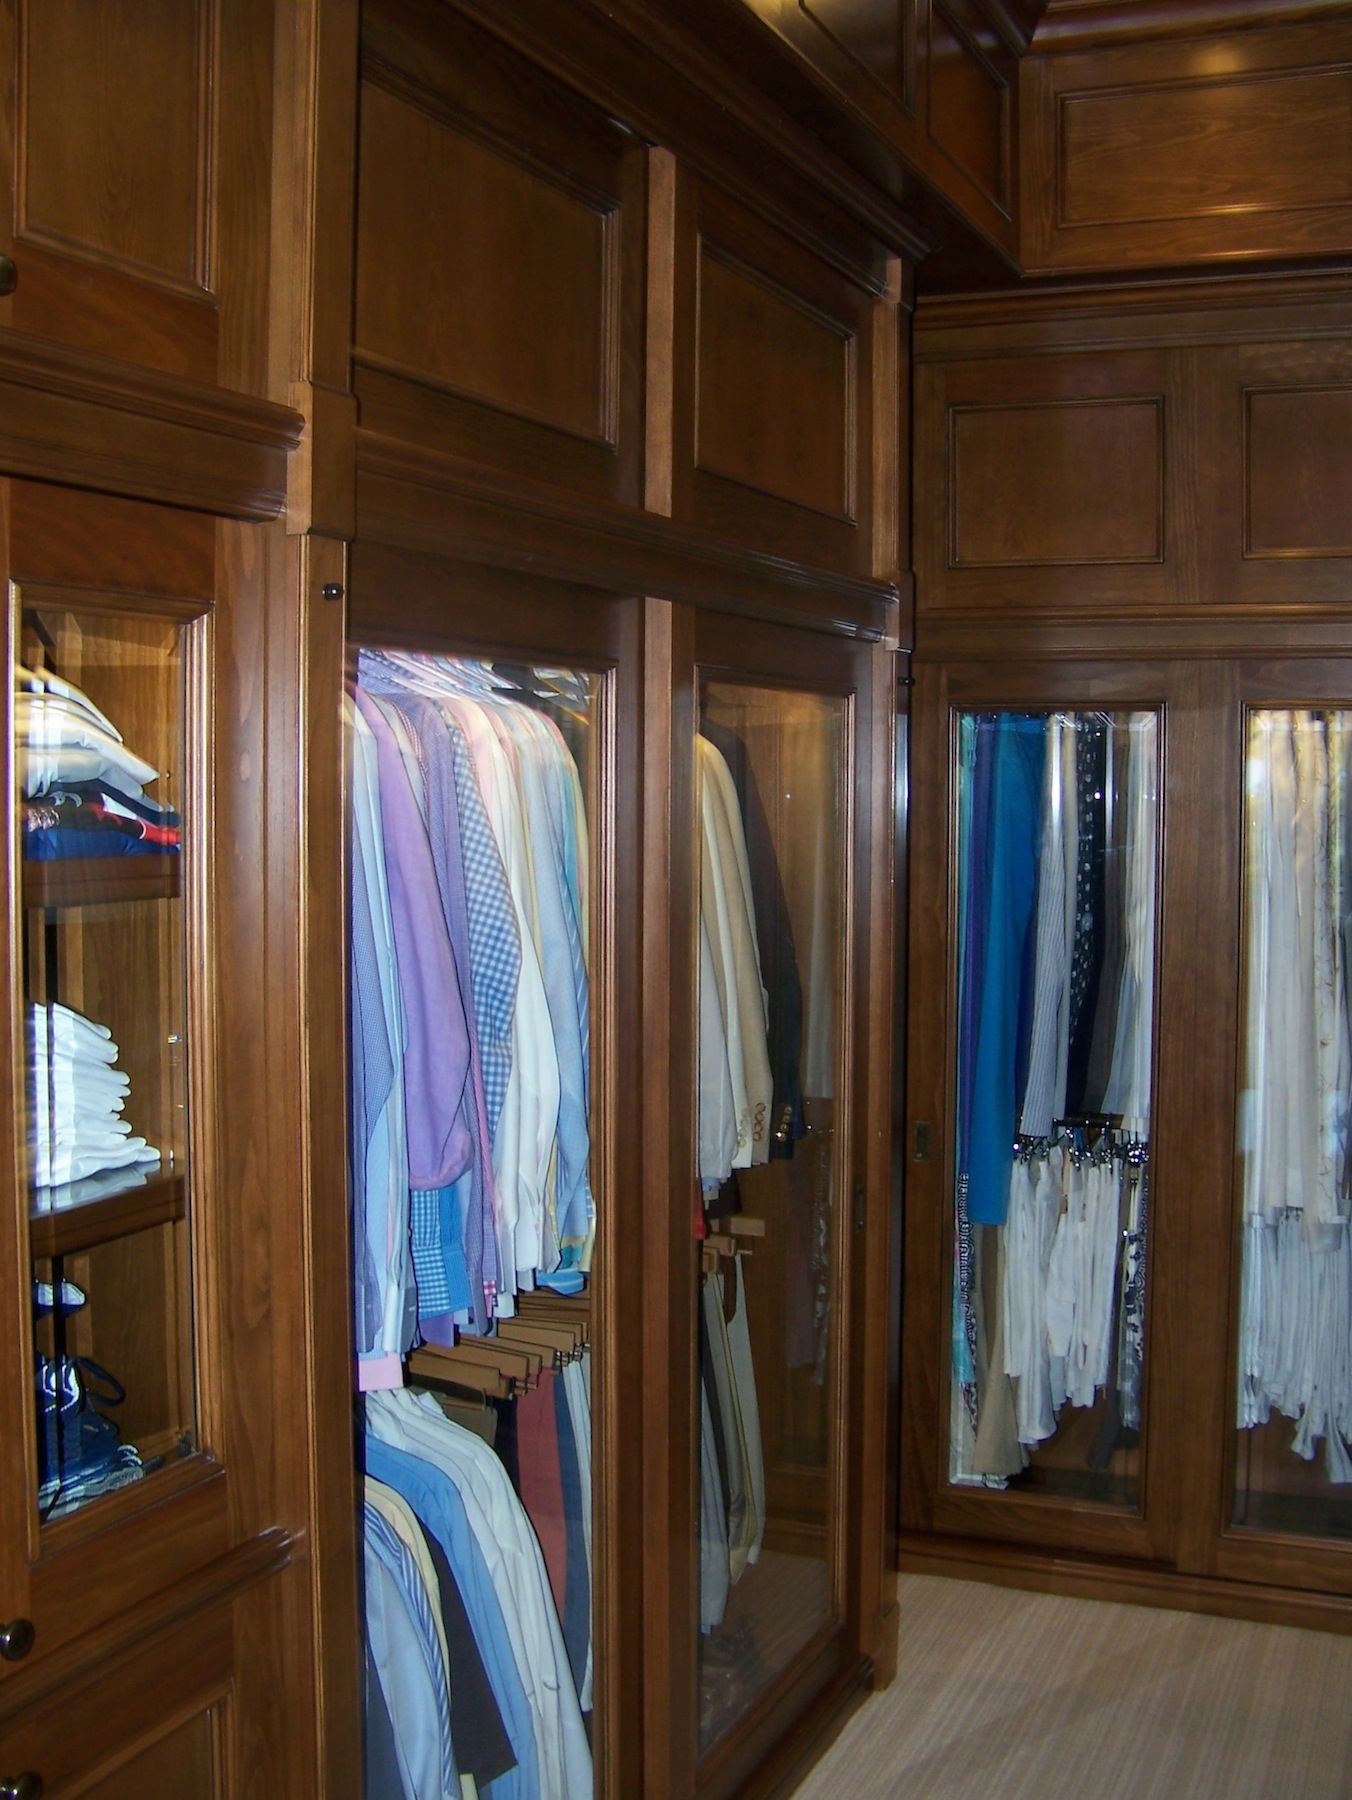 His/hers master closet, side view - Nassau, Bahamas (Lyford Cay)